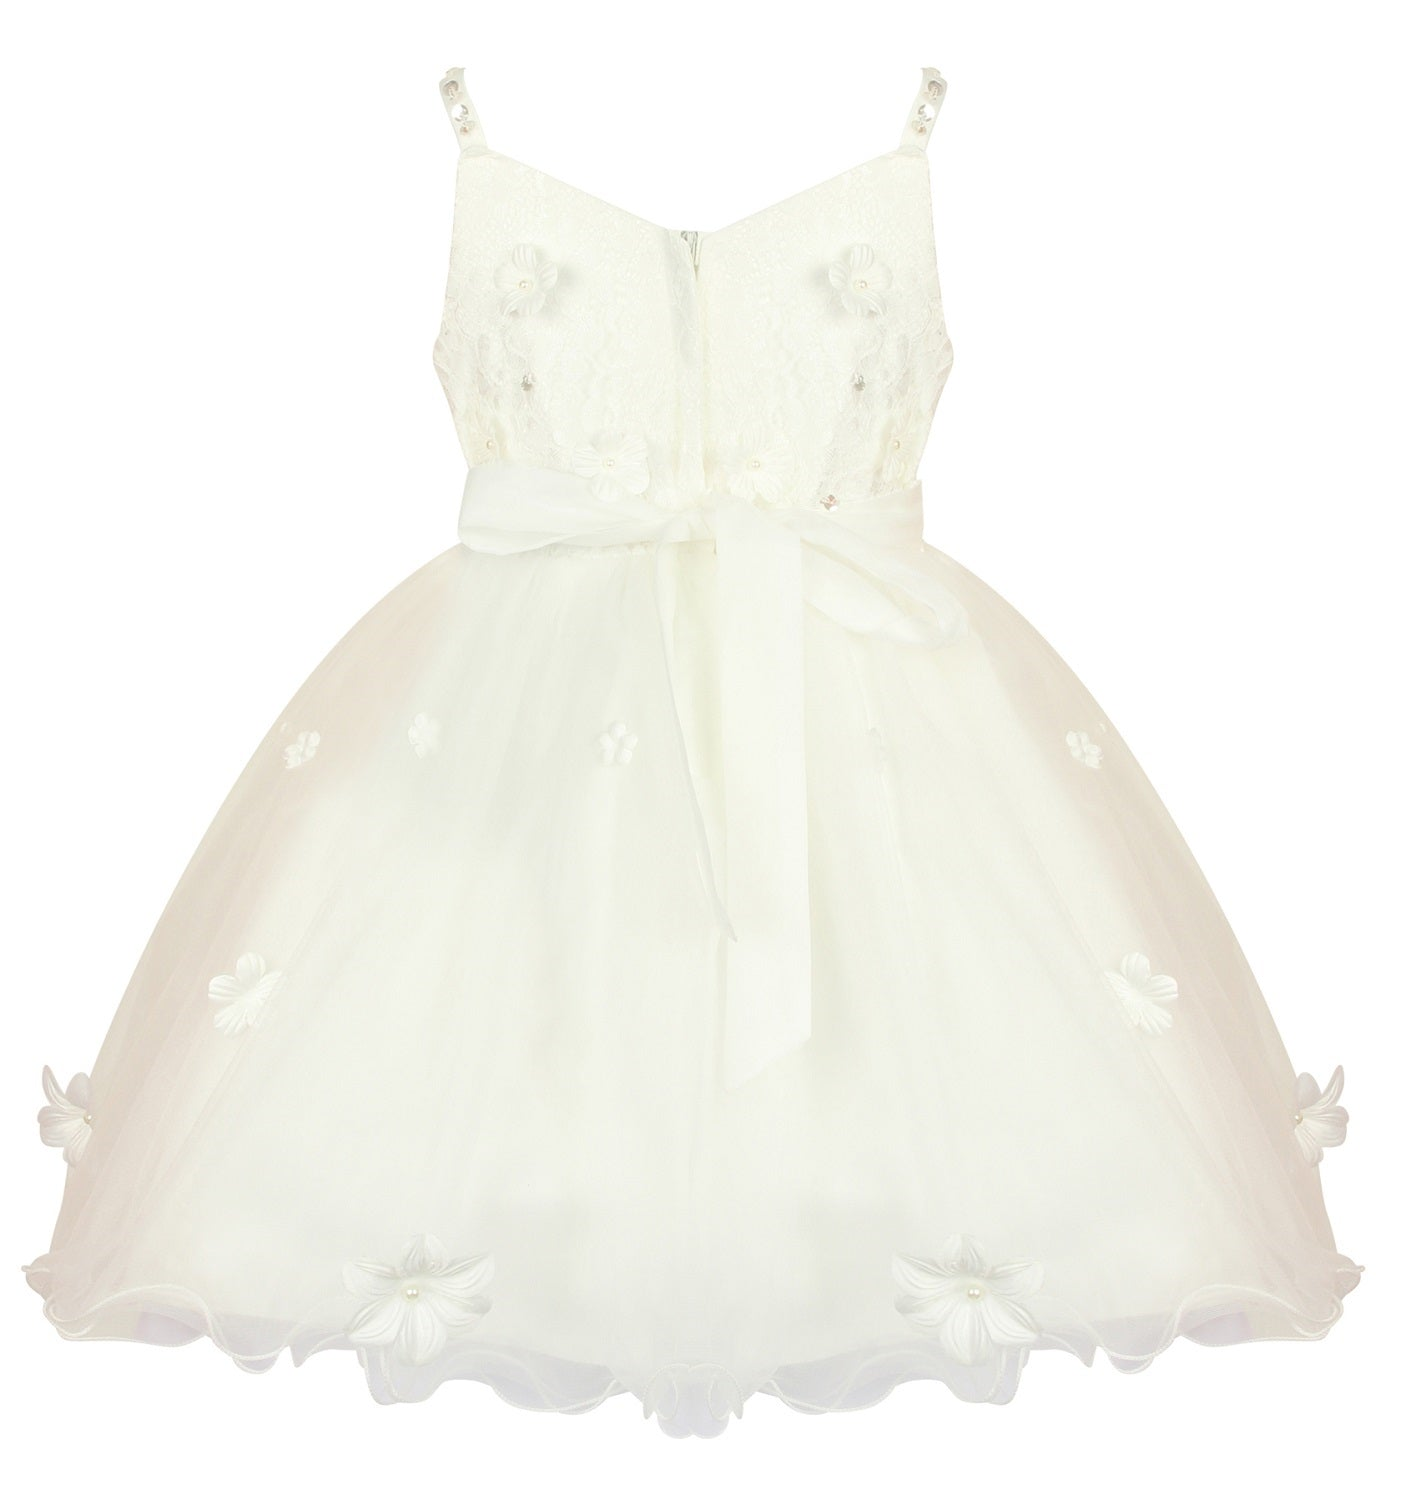 ivory flower girls dress, adorned with petals, pearls and shimmering sequins